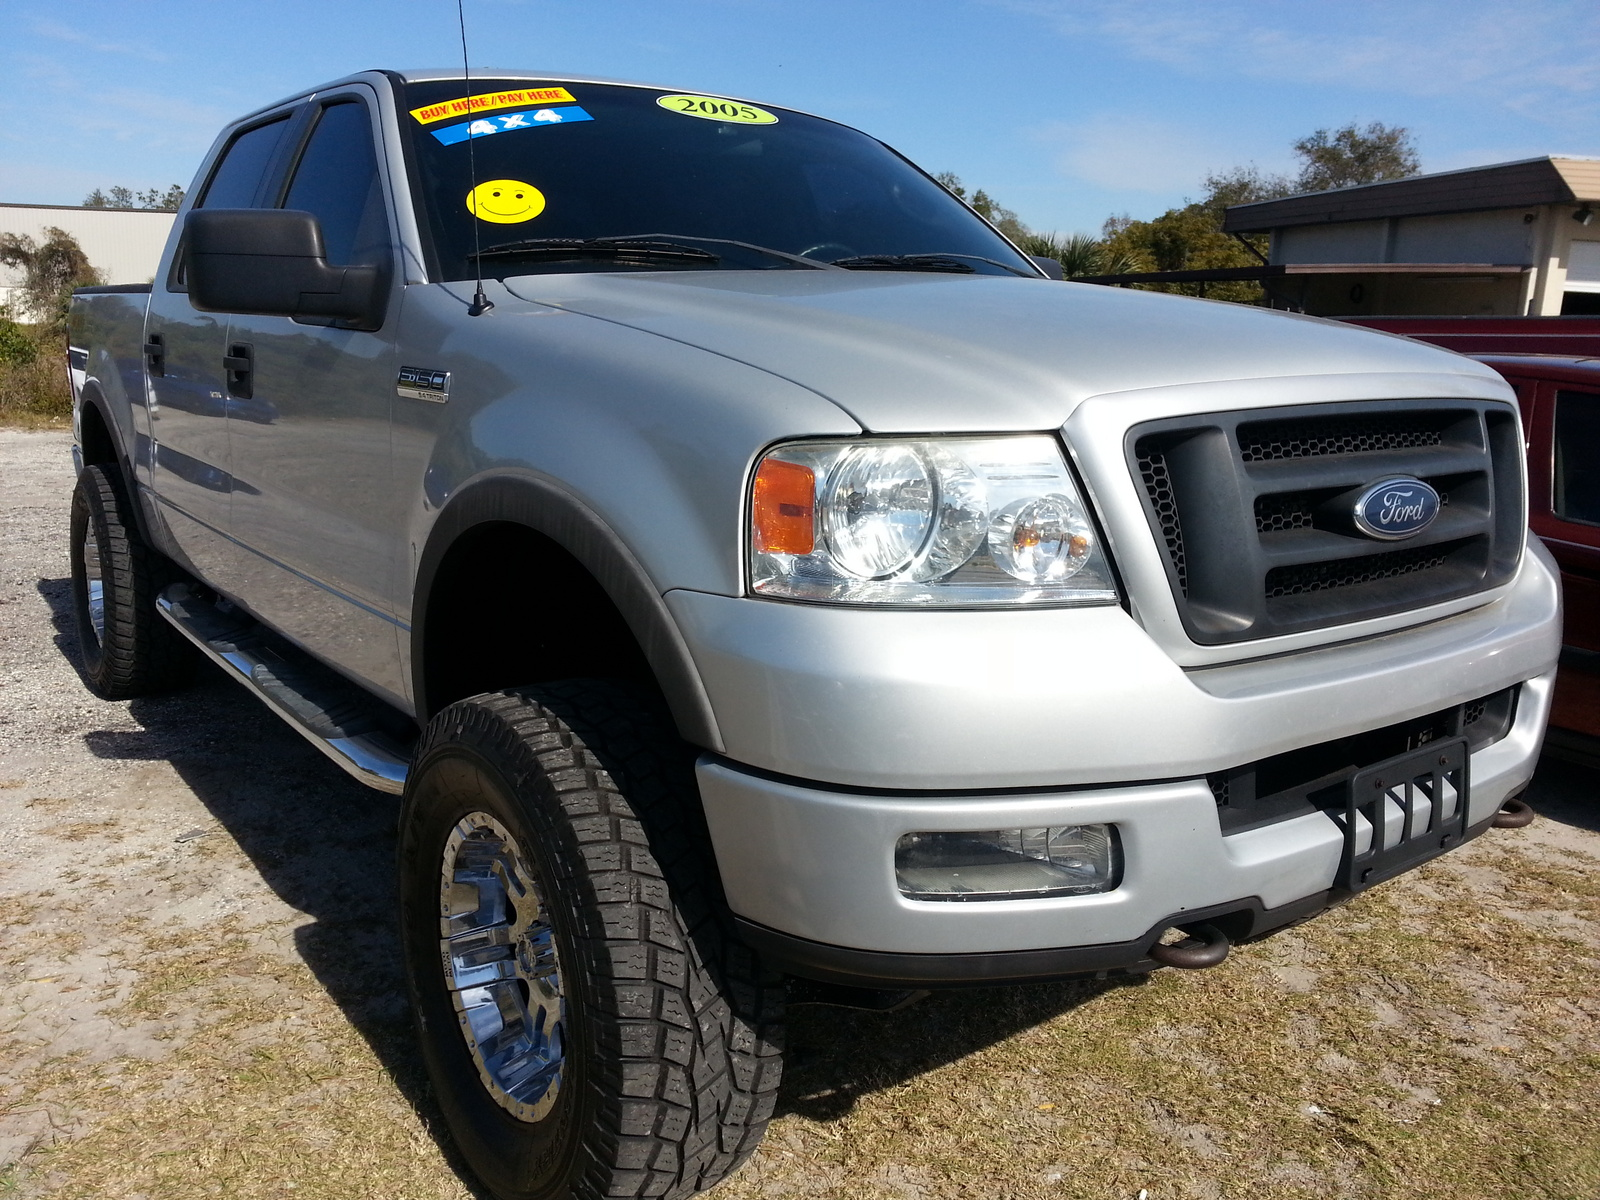 2005 Ford F-150 - Pictures - CarGurus